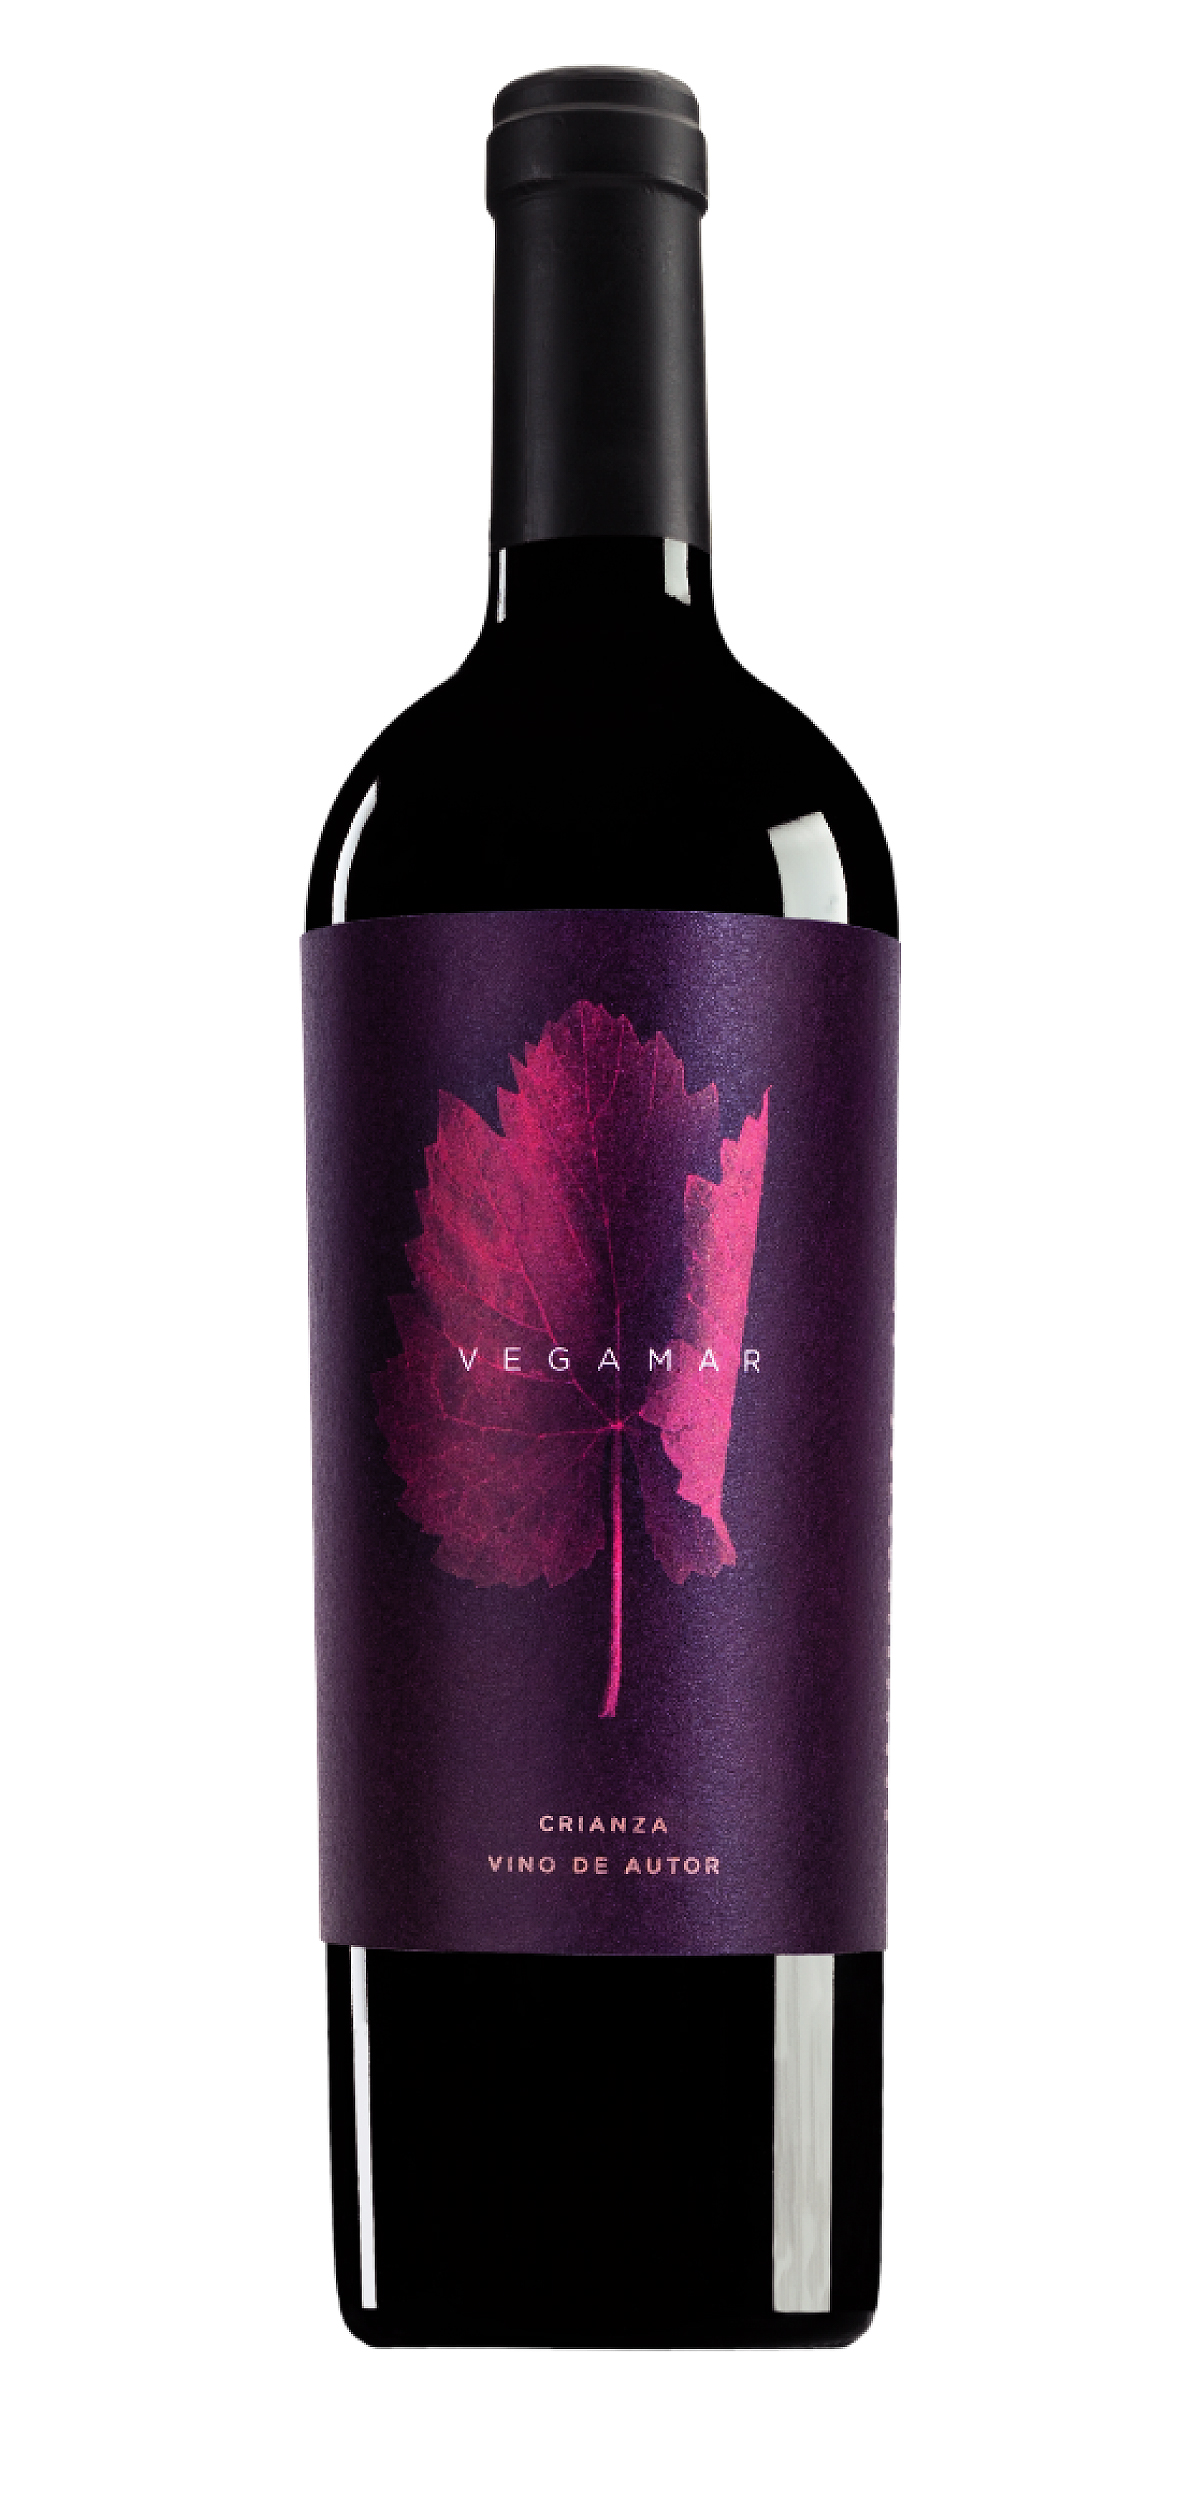 Vegamar Crianza Vino Autor wine bottle design